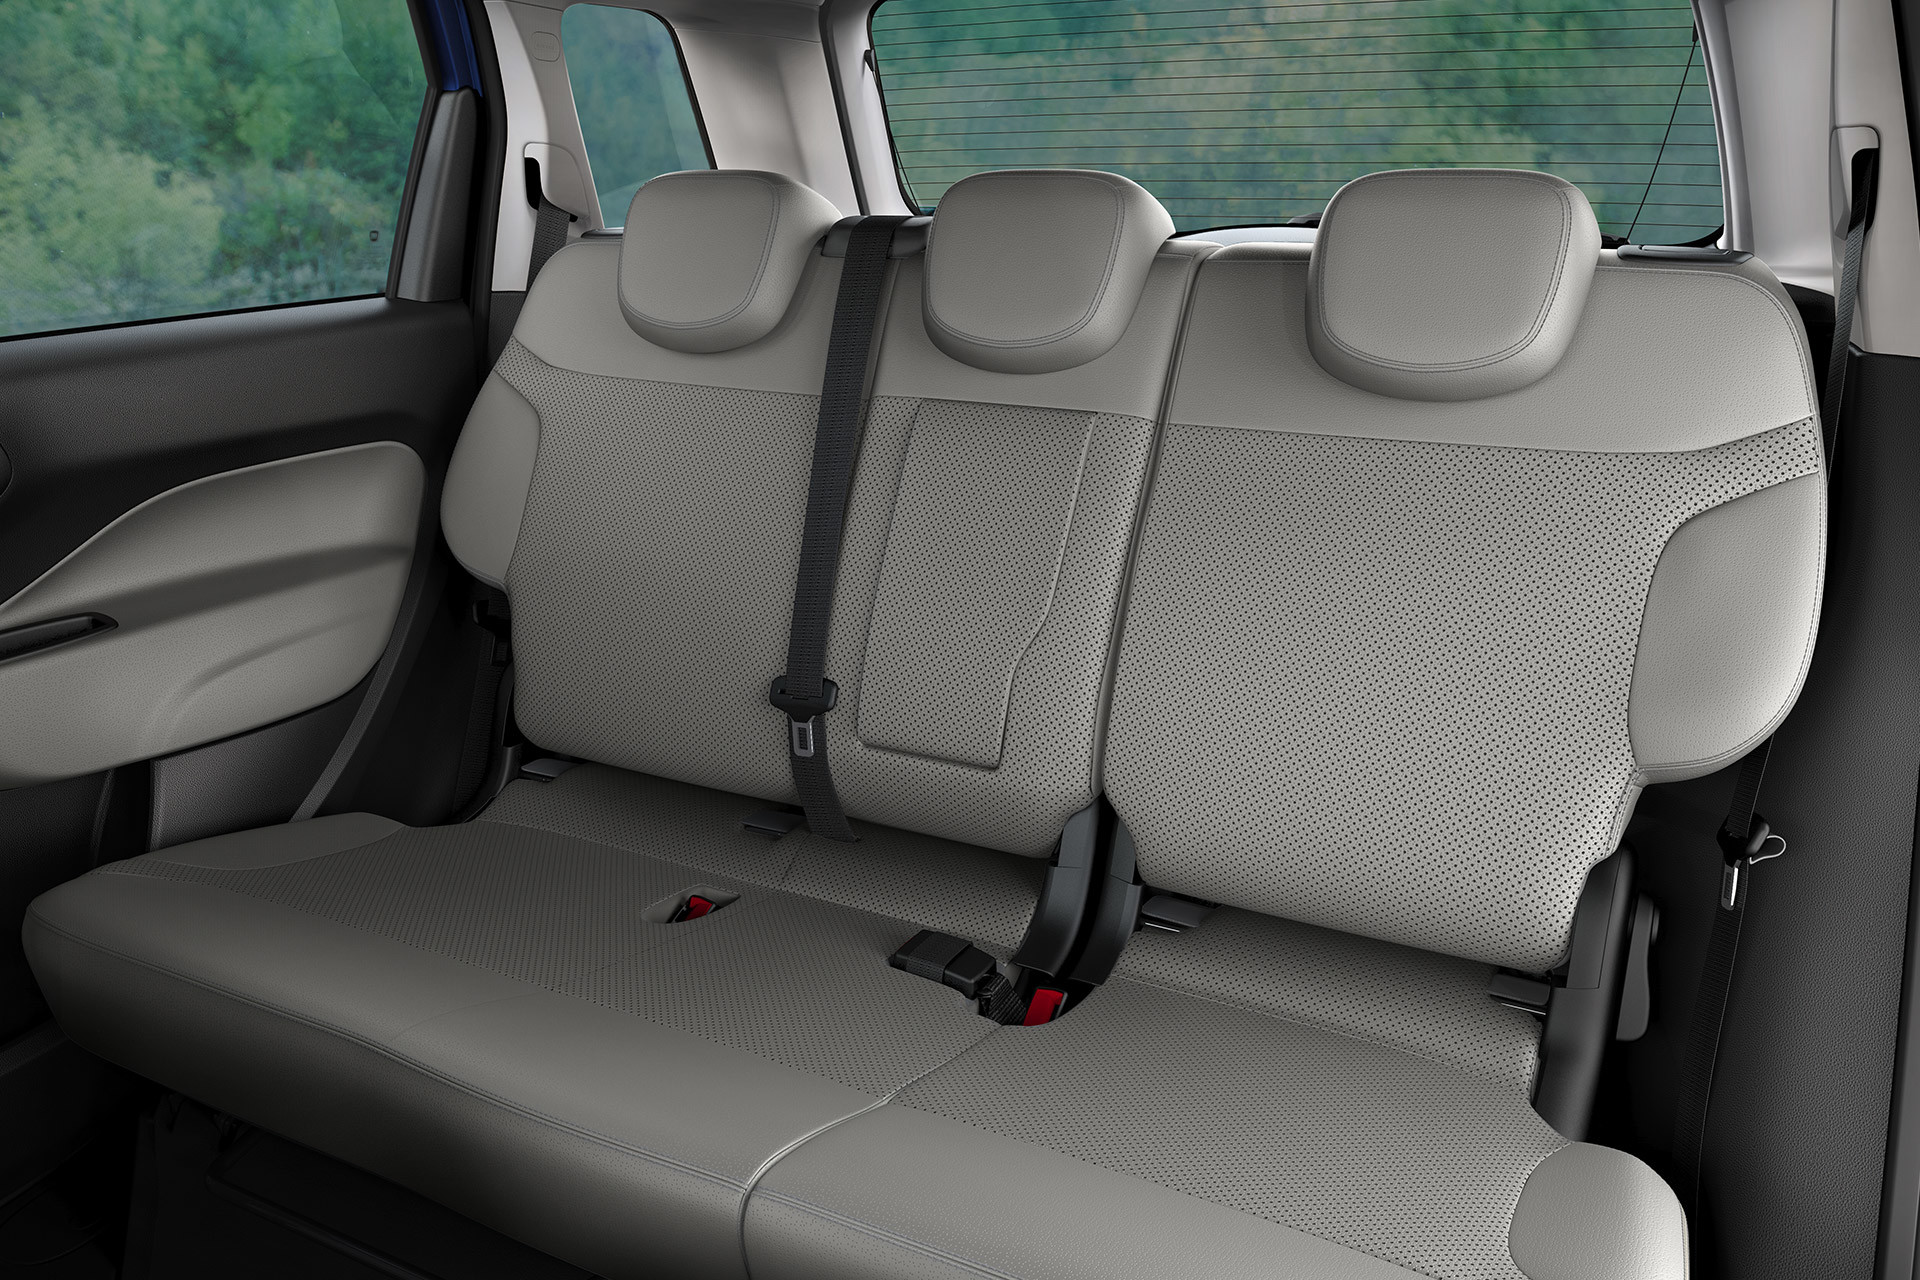 2019 Fiat 500L interior view of rear seats